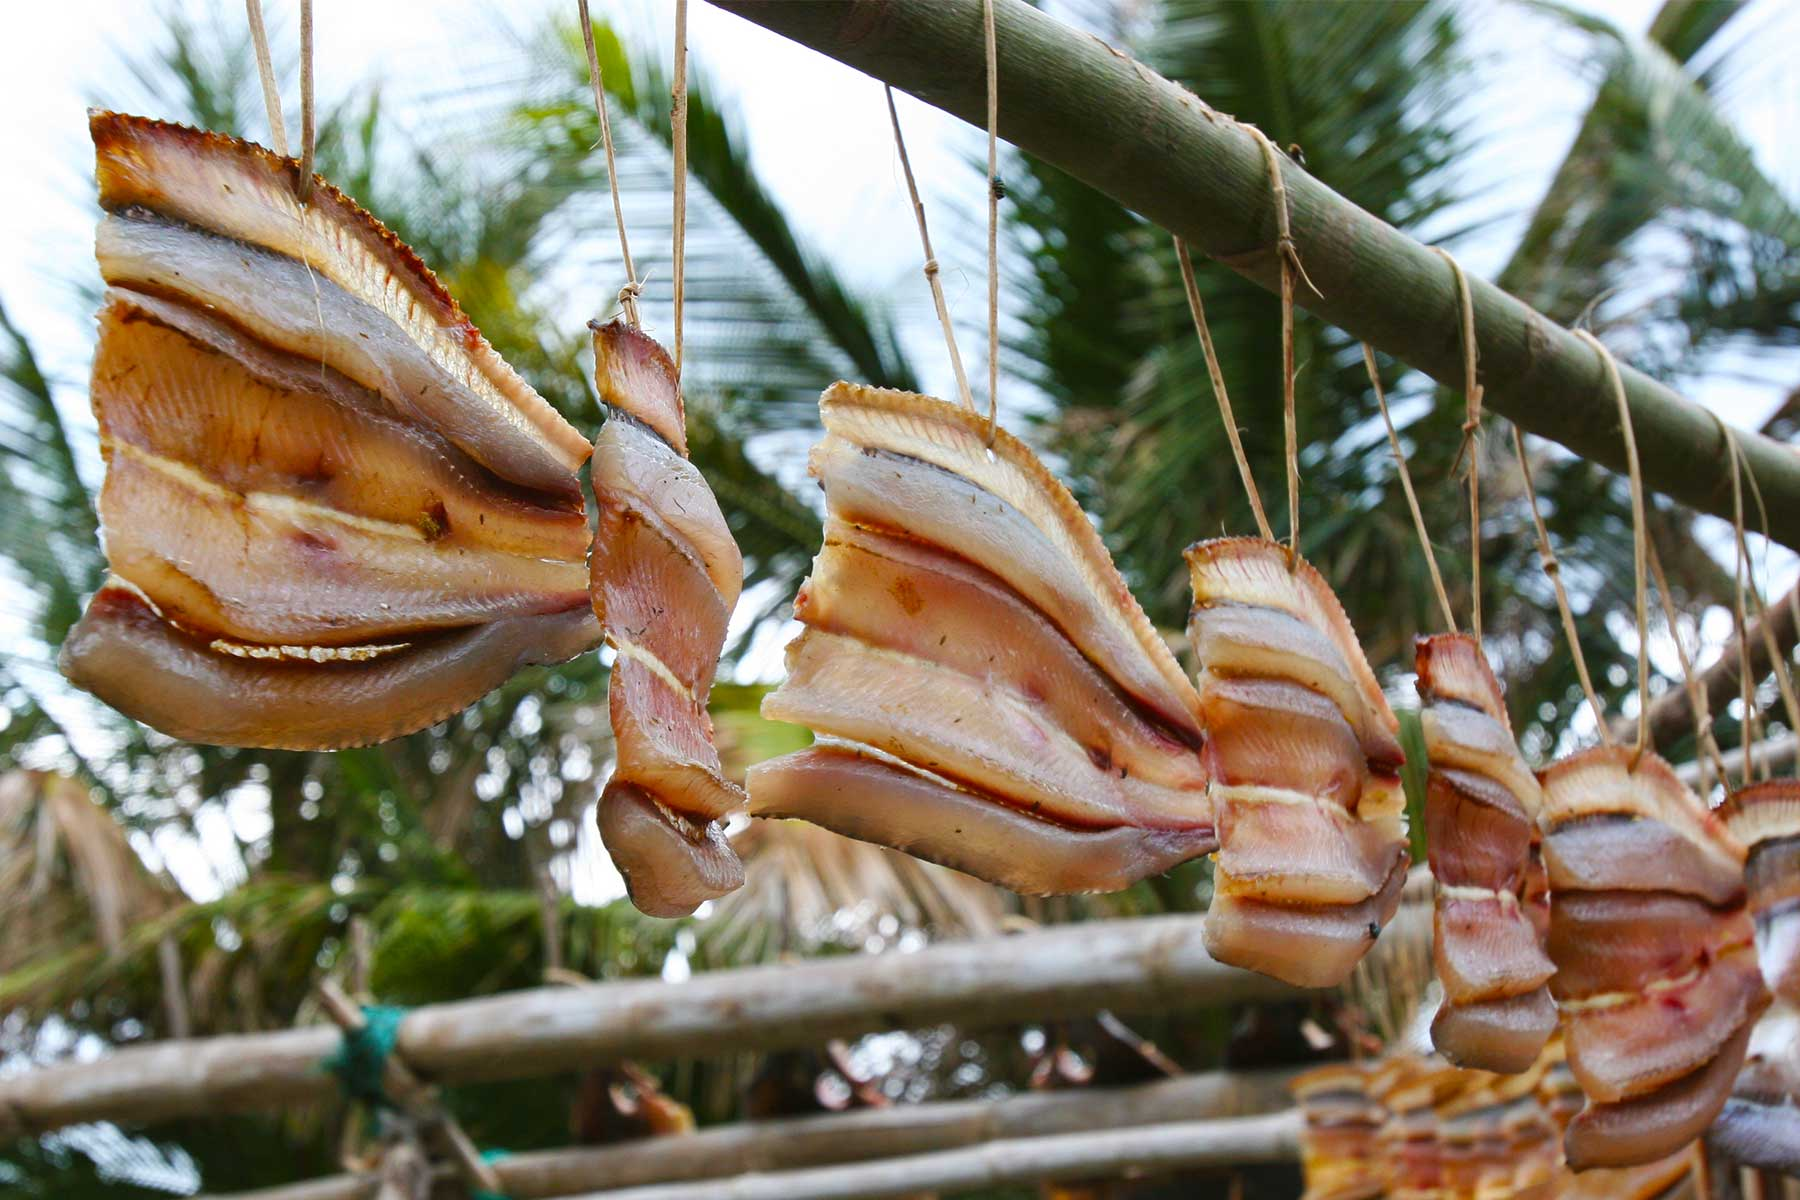 Drying fish - Batanes Islands Cultural Atlas - ECAI - Austronesian - Dr Steven Andrew Martin - Philippines research